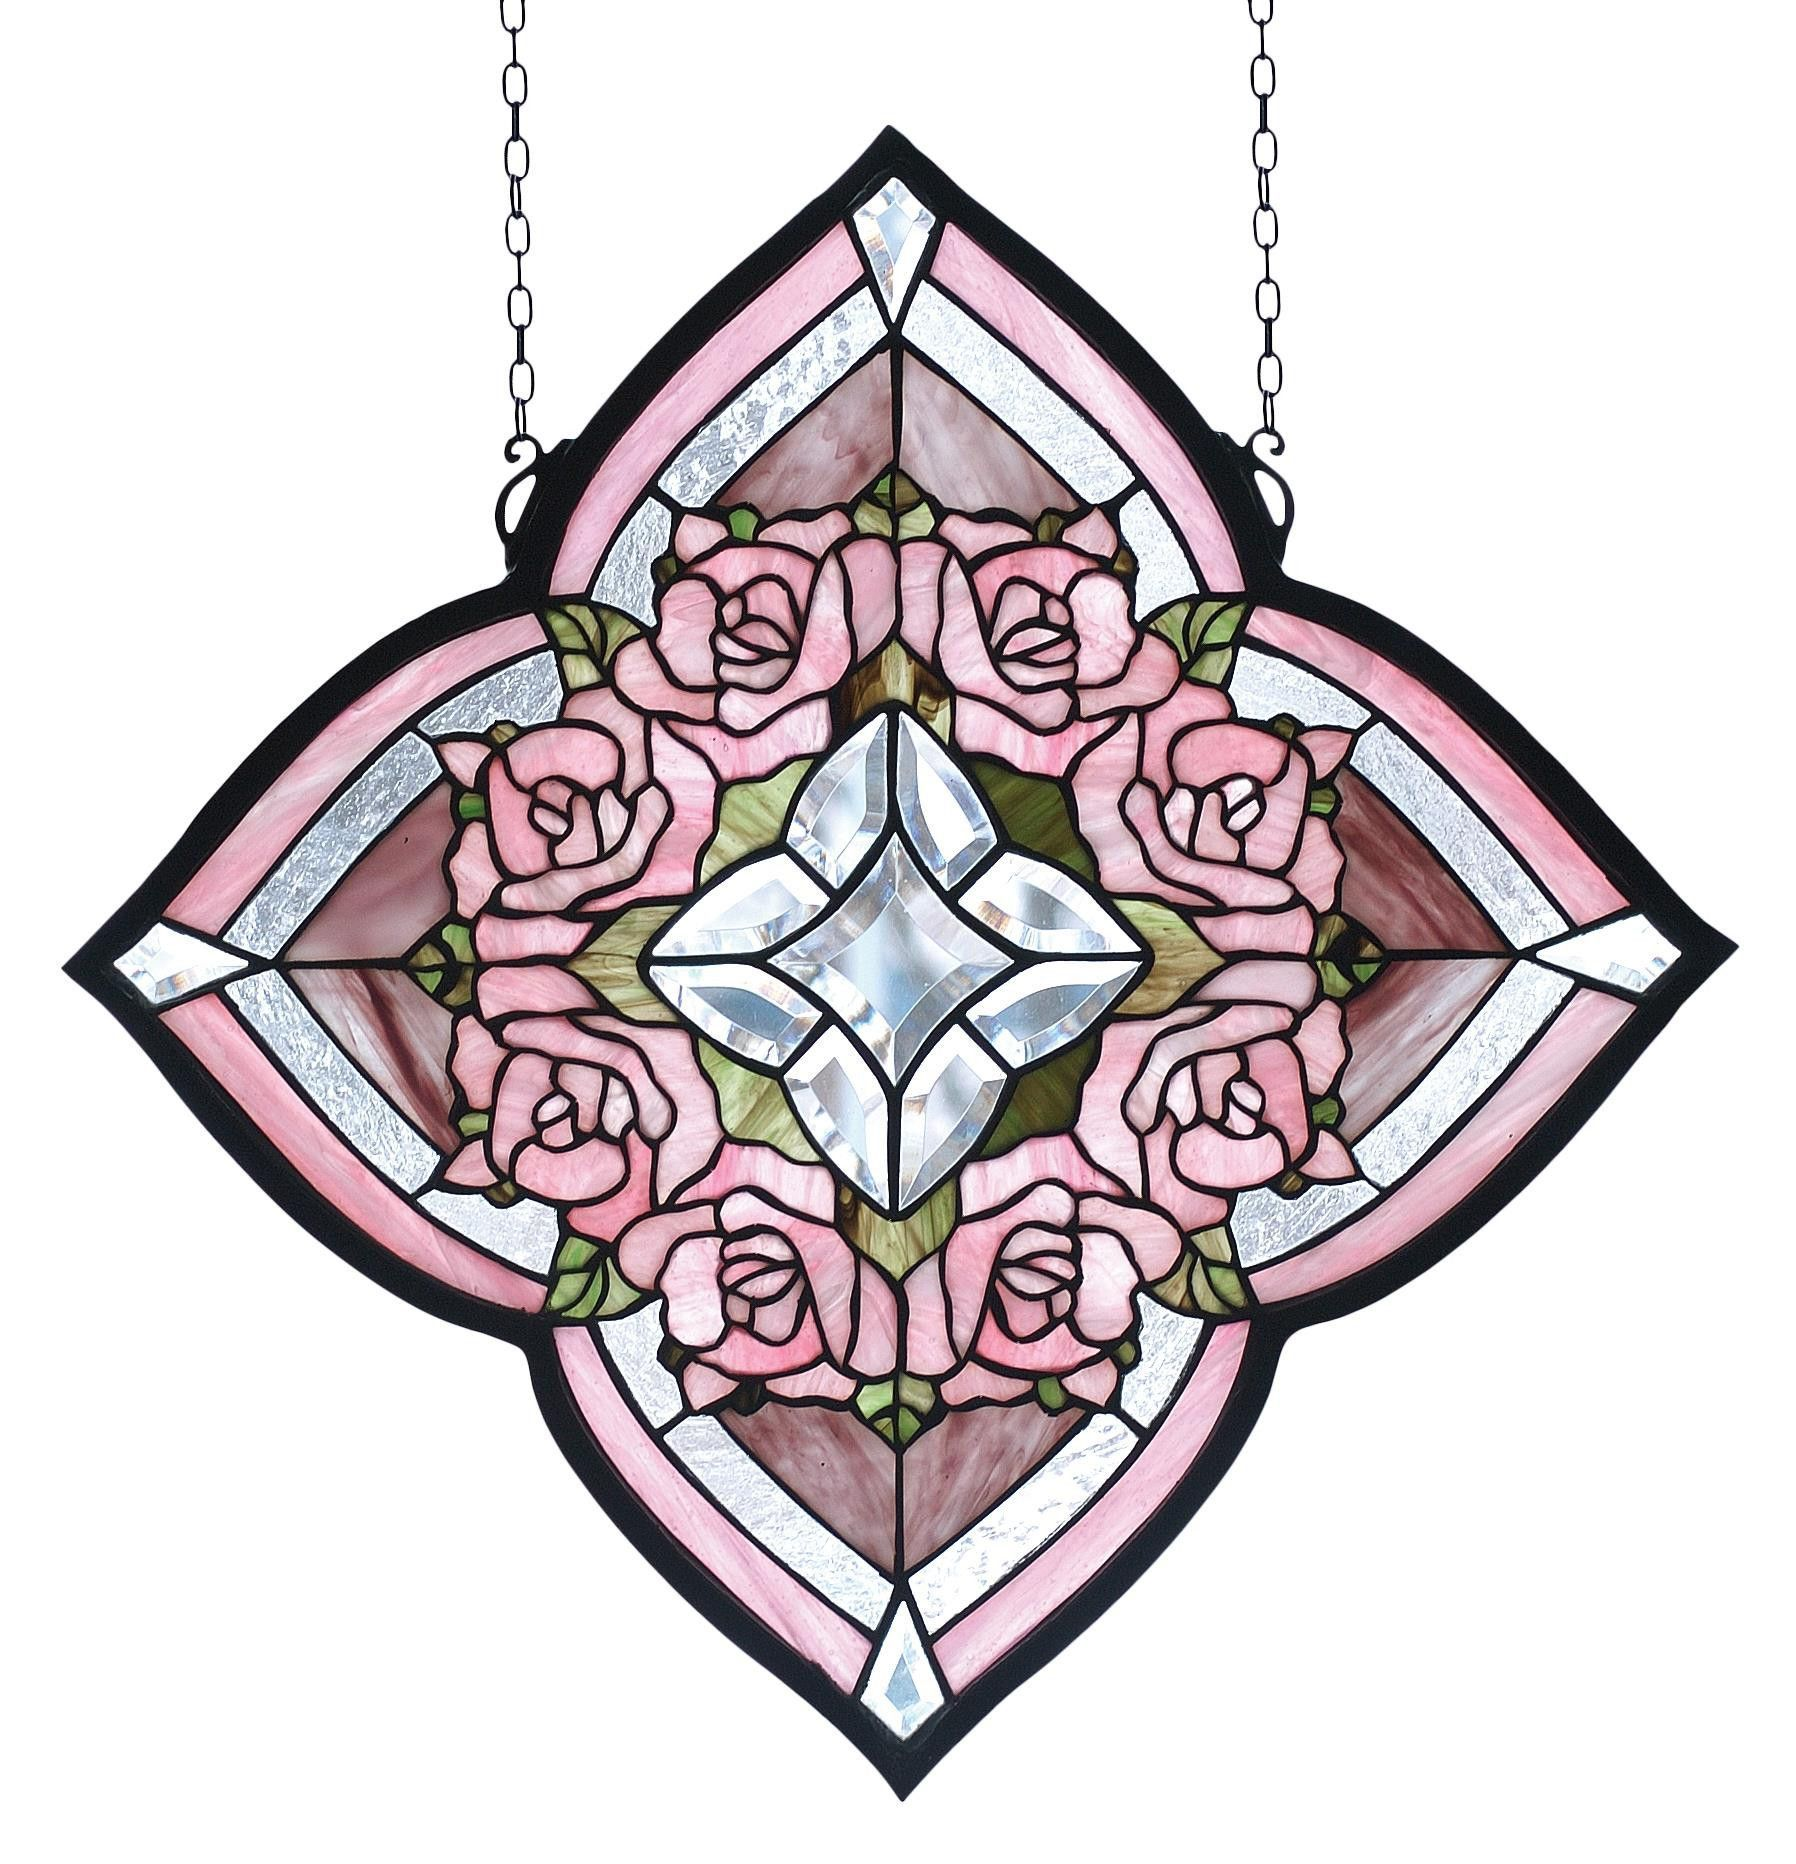 20 Inch W X 20 Inch H Ring Of Roses Stained Glass Window